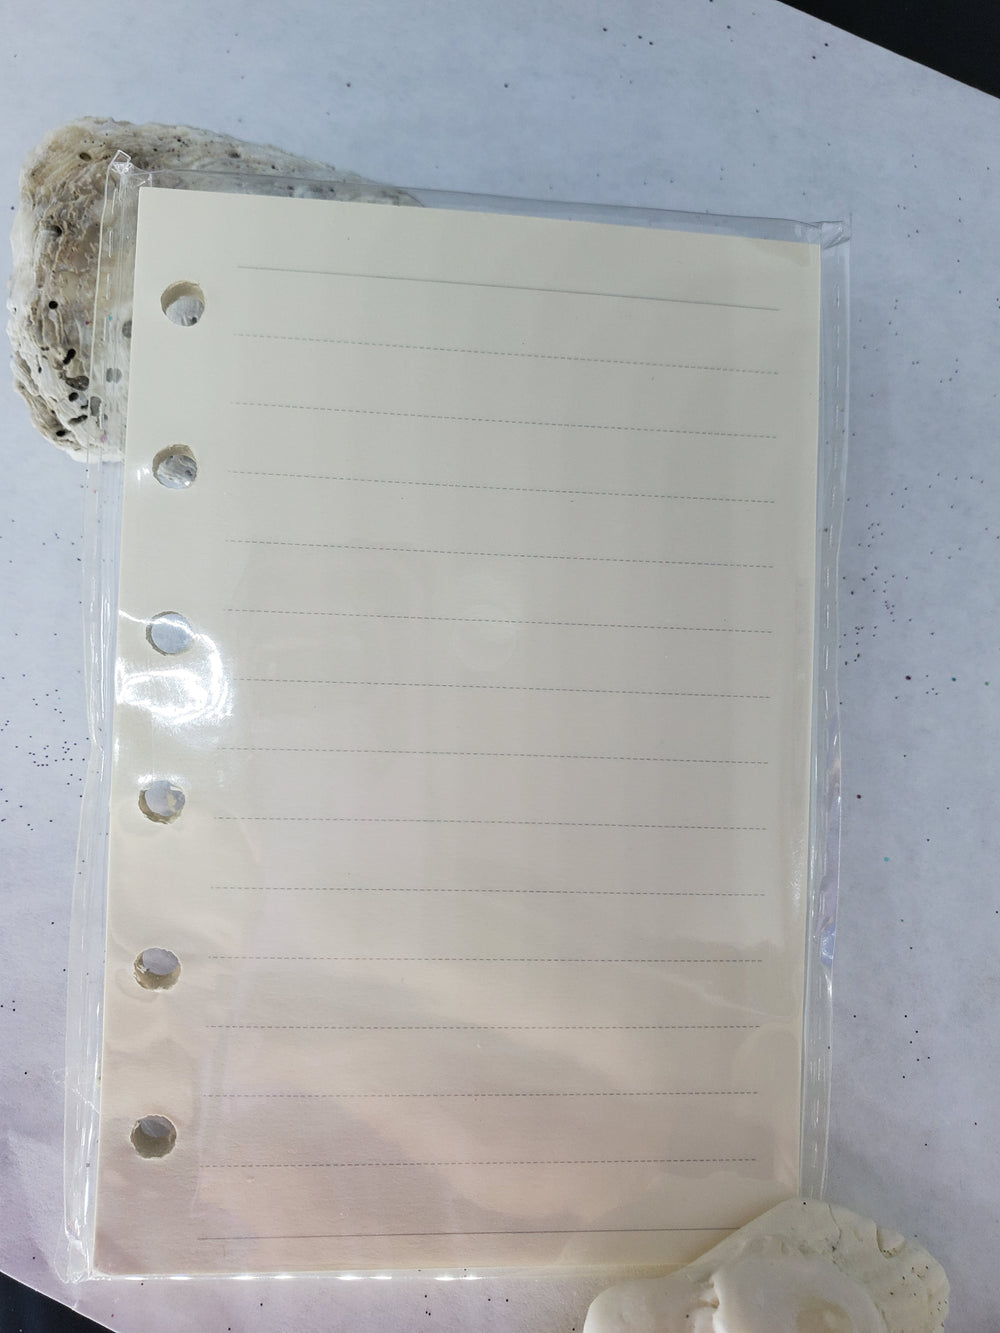 Small notepad paper